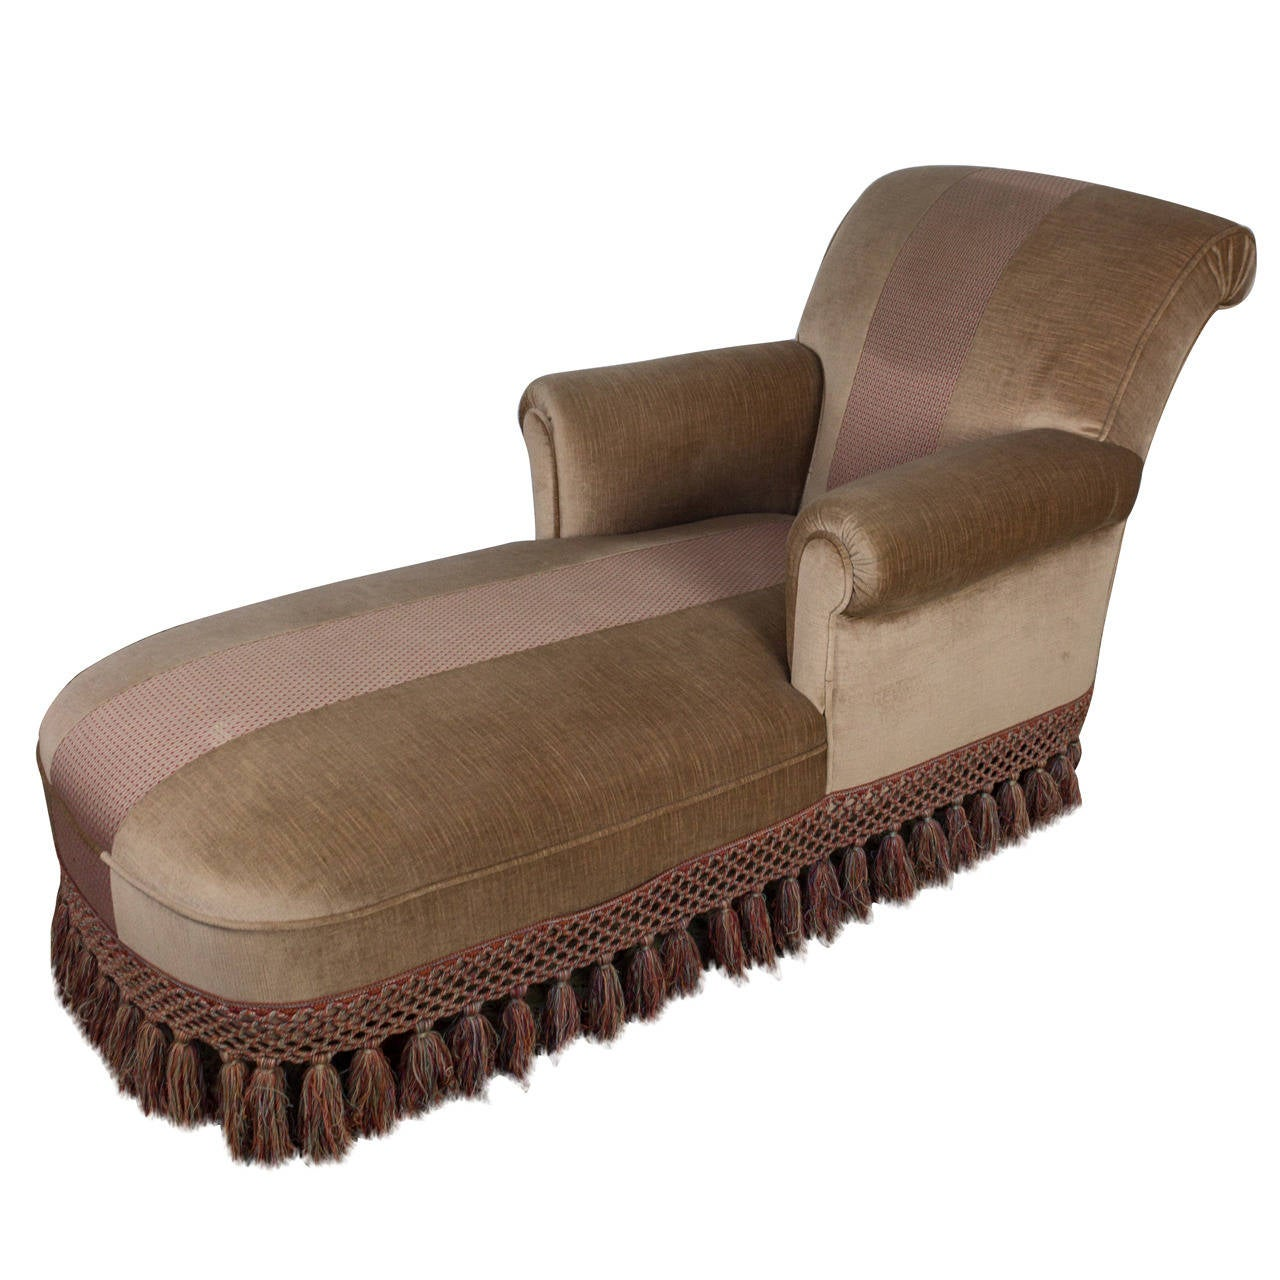 French 1940s chaise longue for sale at 1stdibs for Chaise 1940